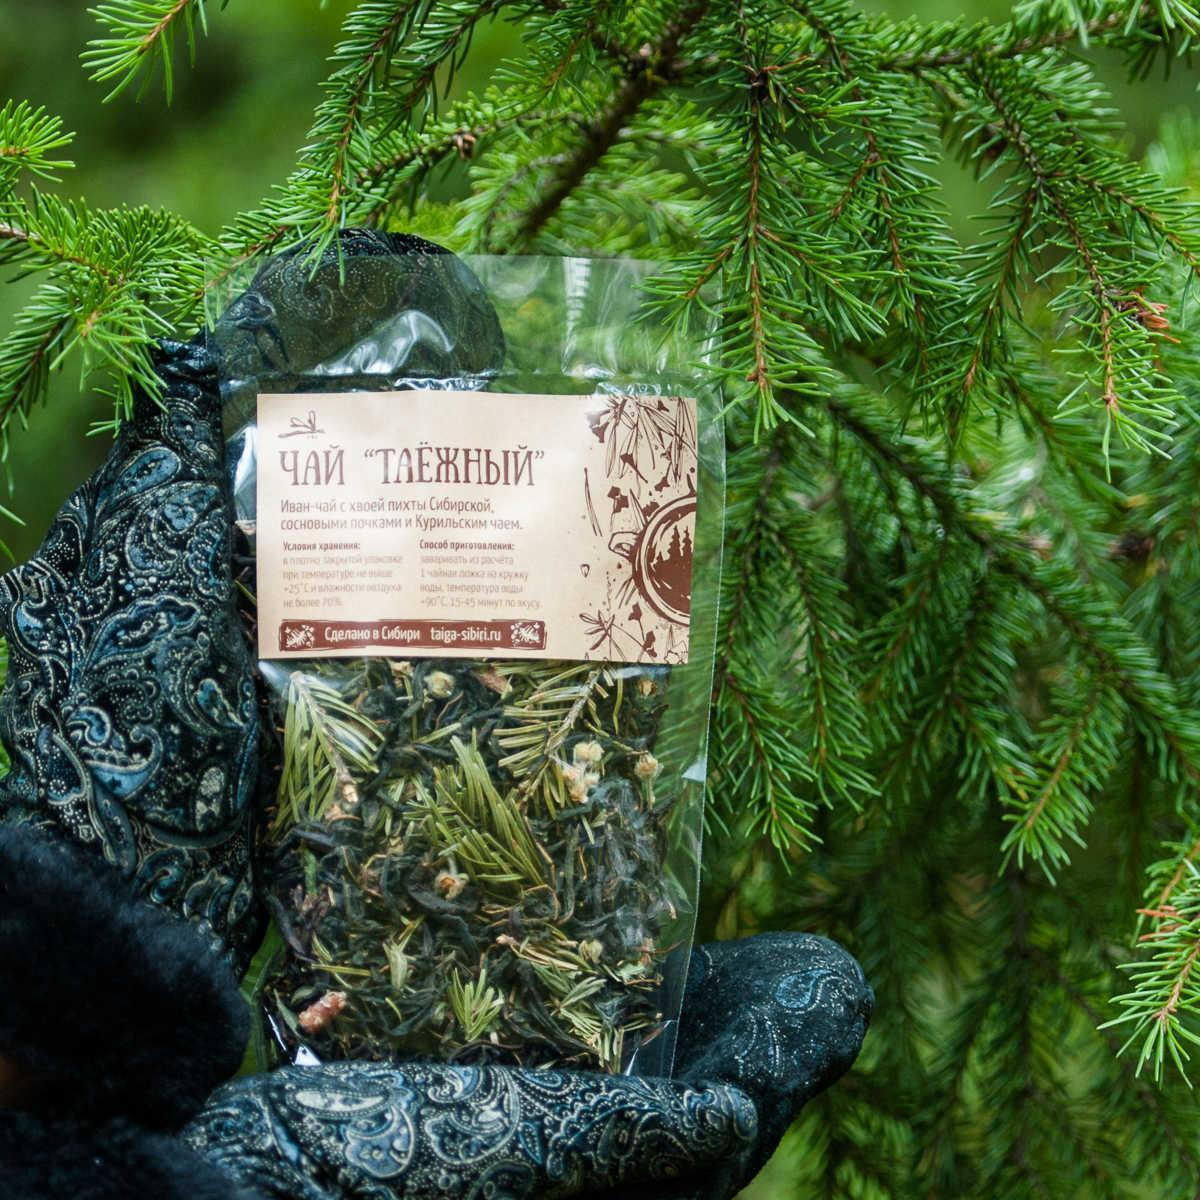 Taiga tea 50 gr - Products to bring from Krasnoyarsk: TOP 6 – the best ideas!